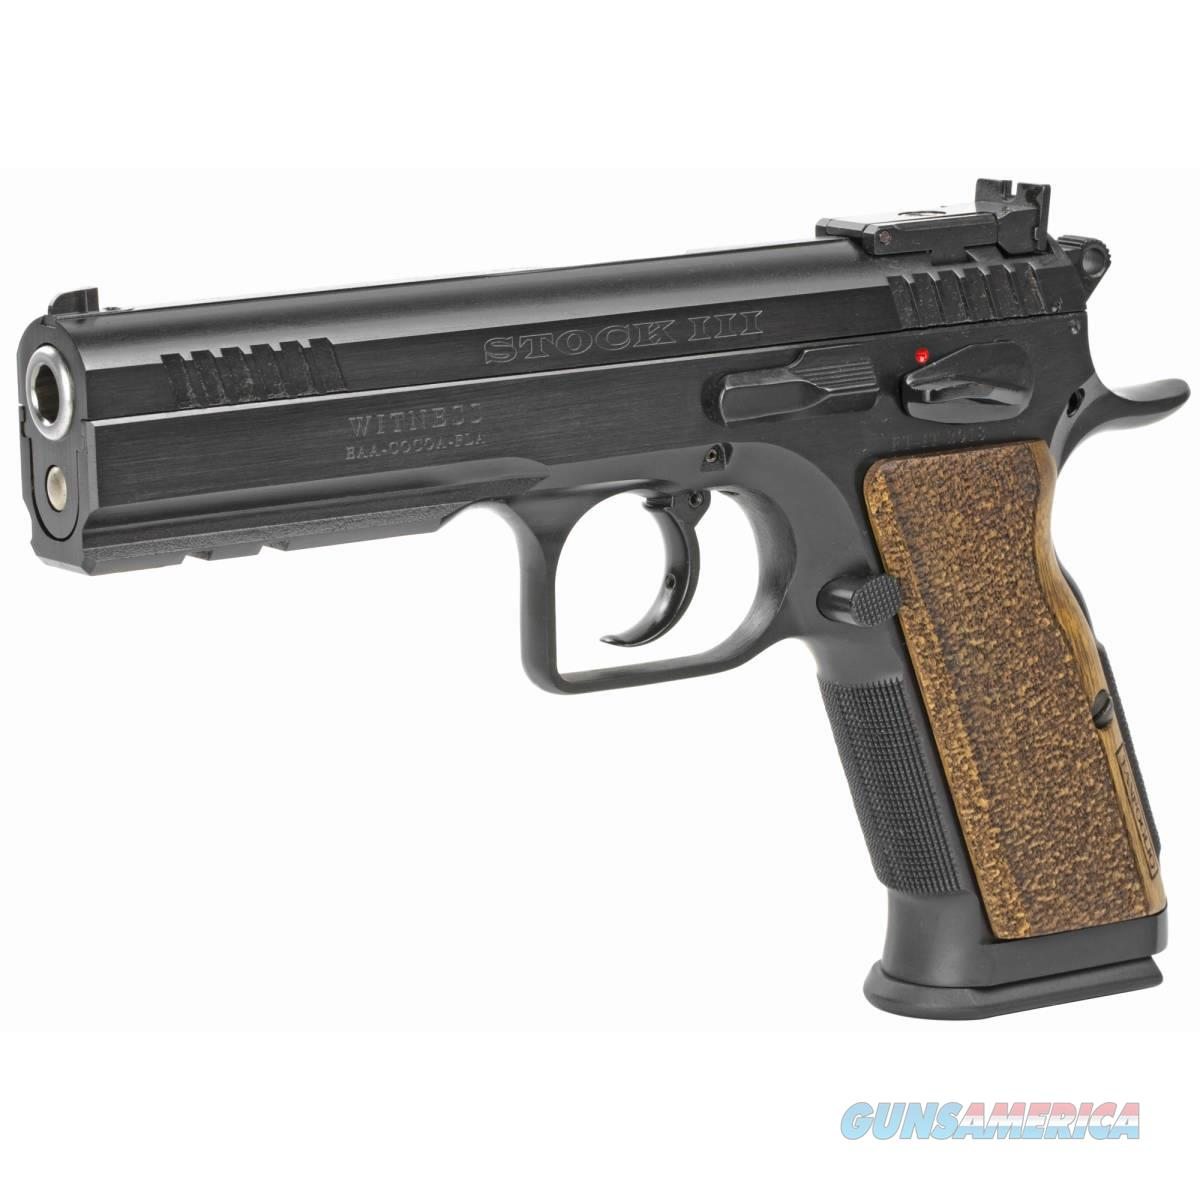 "EAA Corp. Tanfoglio Witness Elite Stock III 9mm 4.75"" 600595  Guns > Pistols > EAA Pistols > Other"